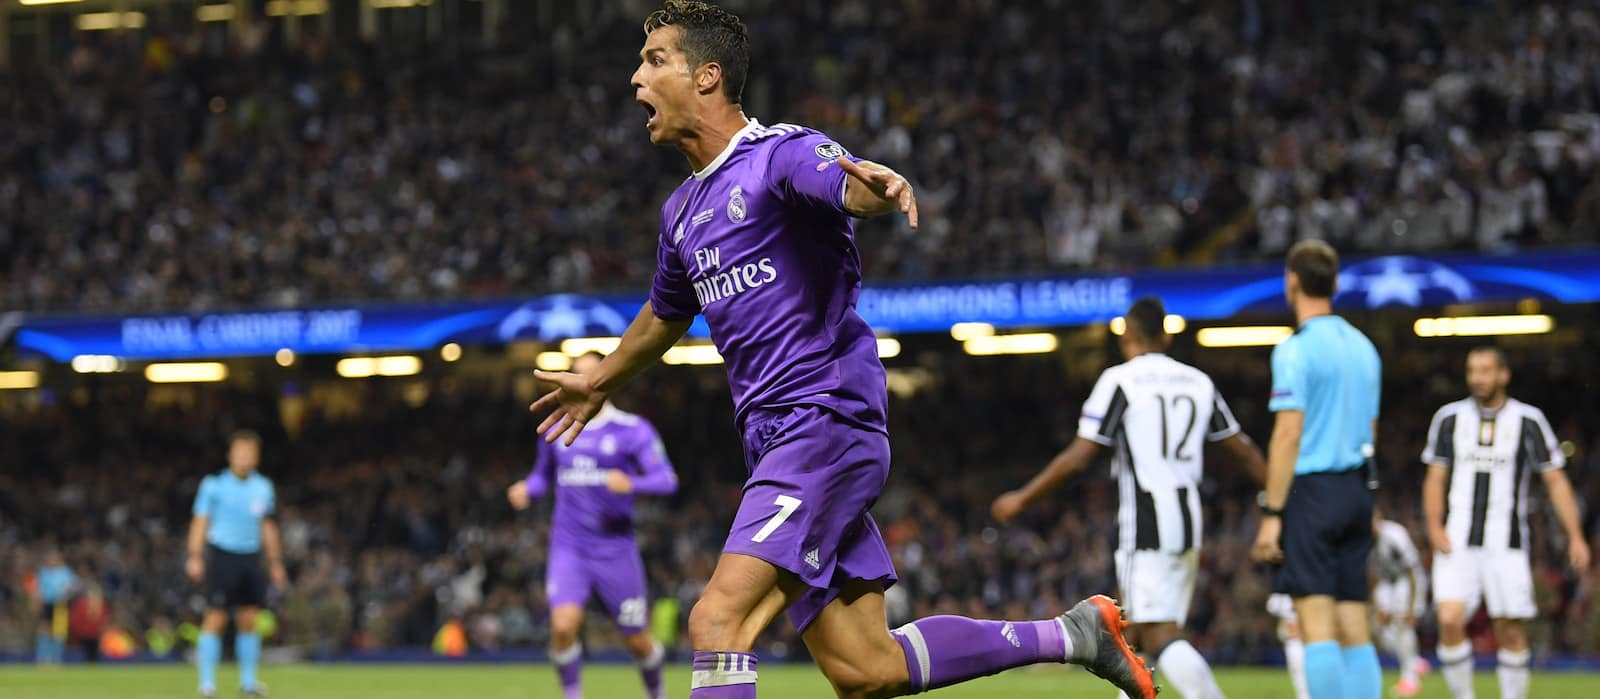 Cristiano Ronaldo set for Old Trafford return as Manchester United draw Juventus, Valencia and Young Boys